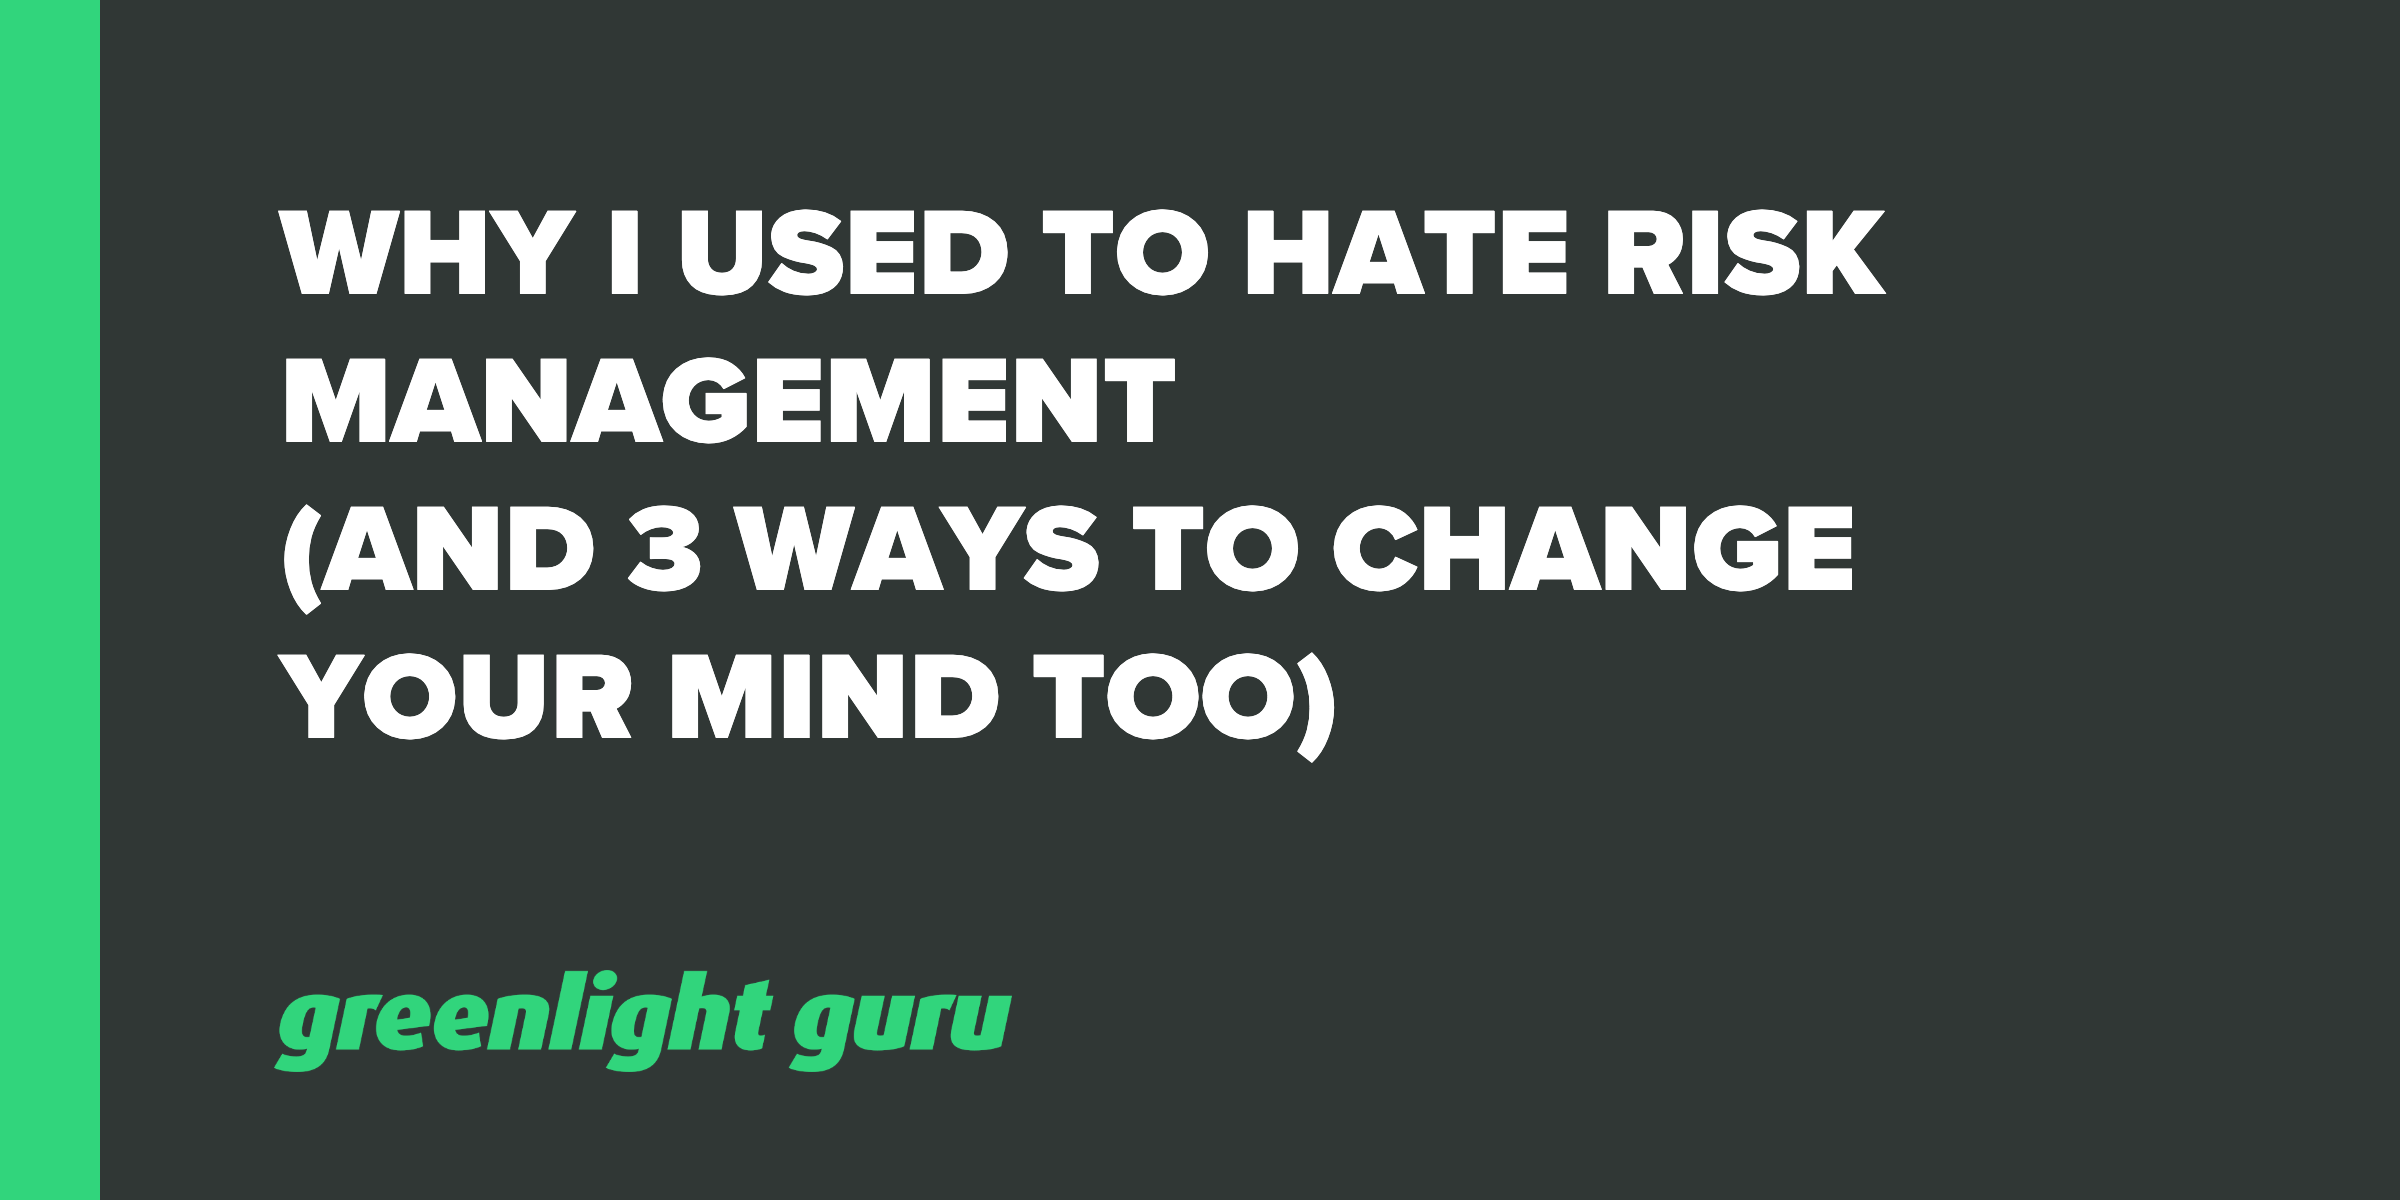 Why I Used To Hate Risk Management (3 ways for mindset shift)-1